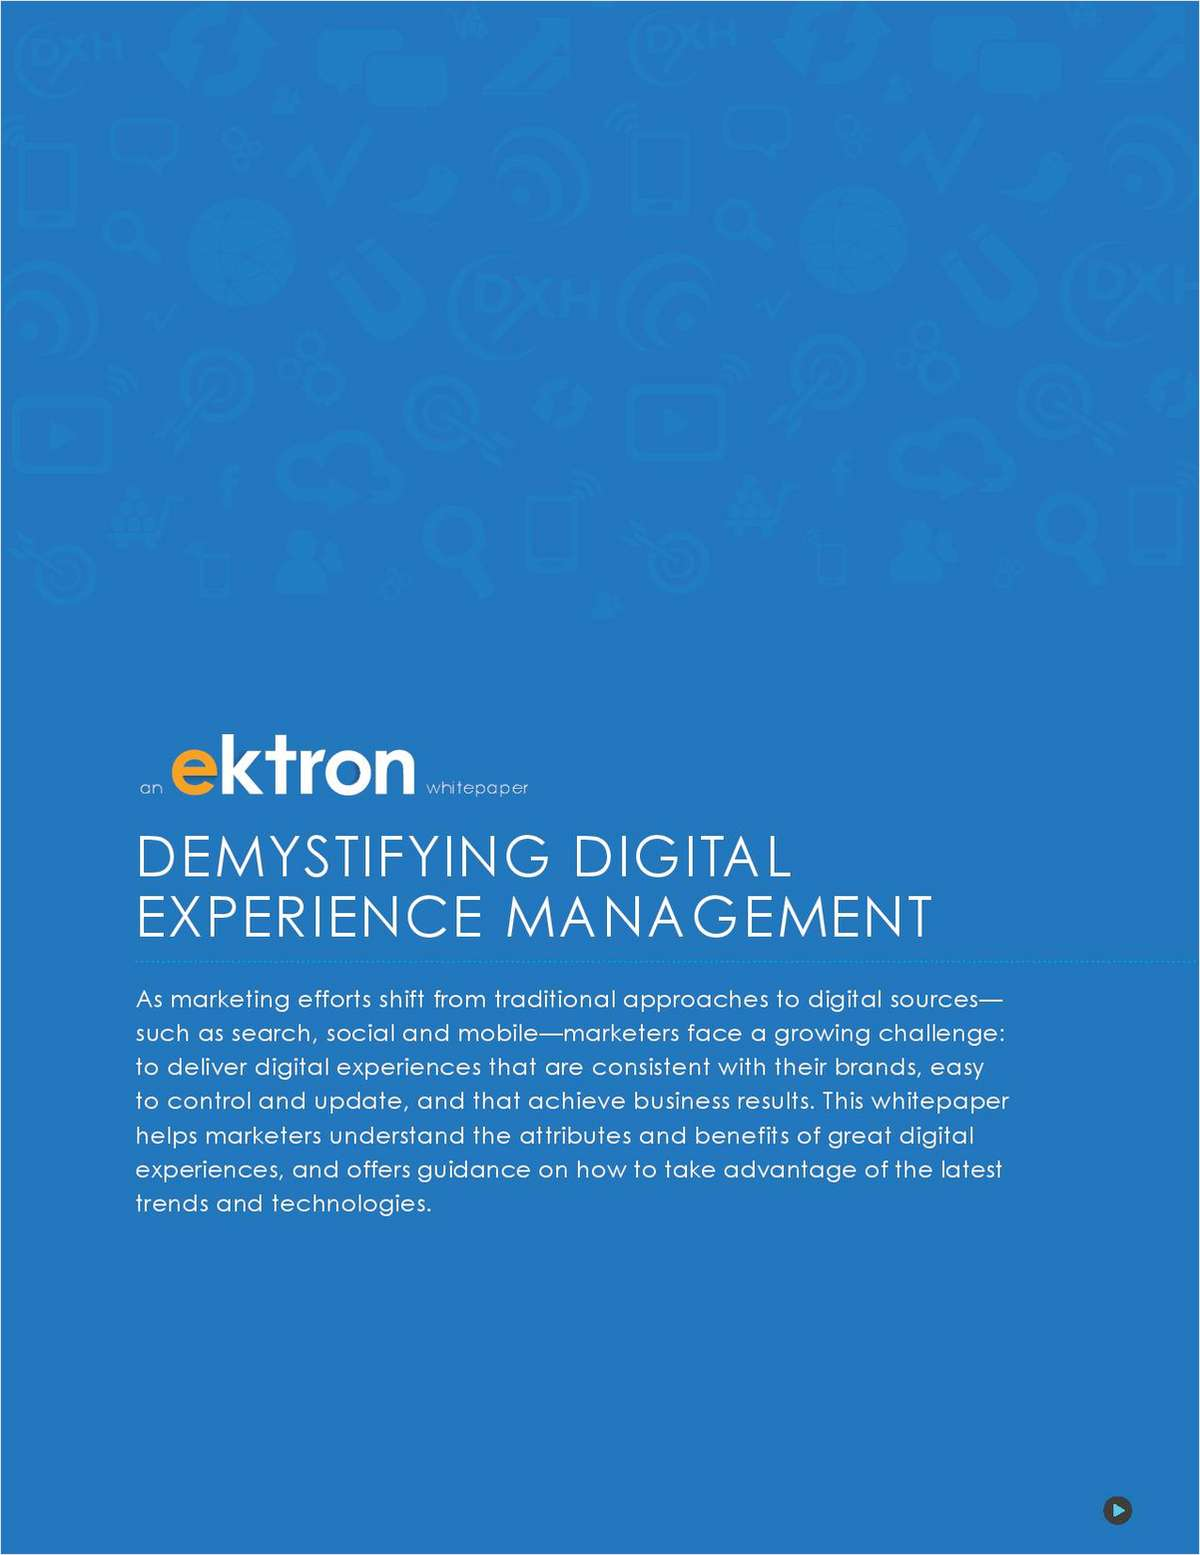 Understand the Elements of a Great Digital Experience